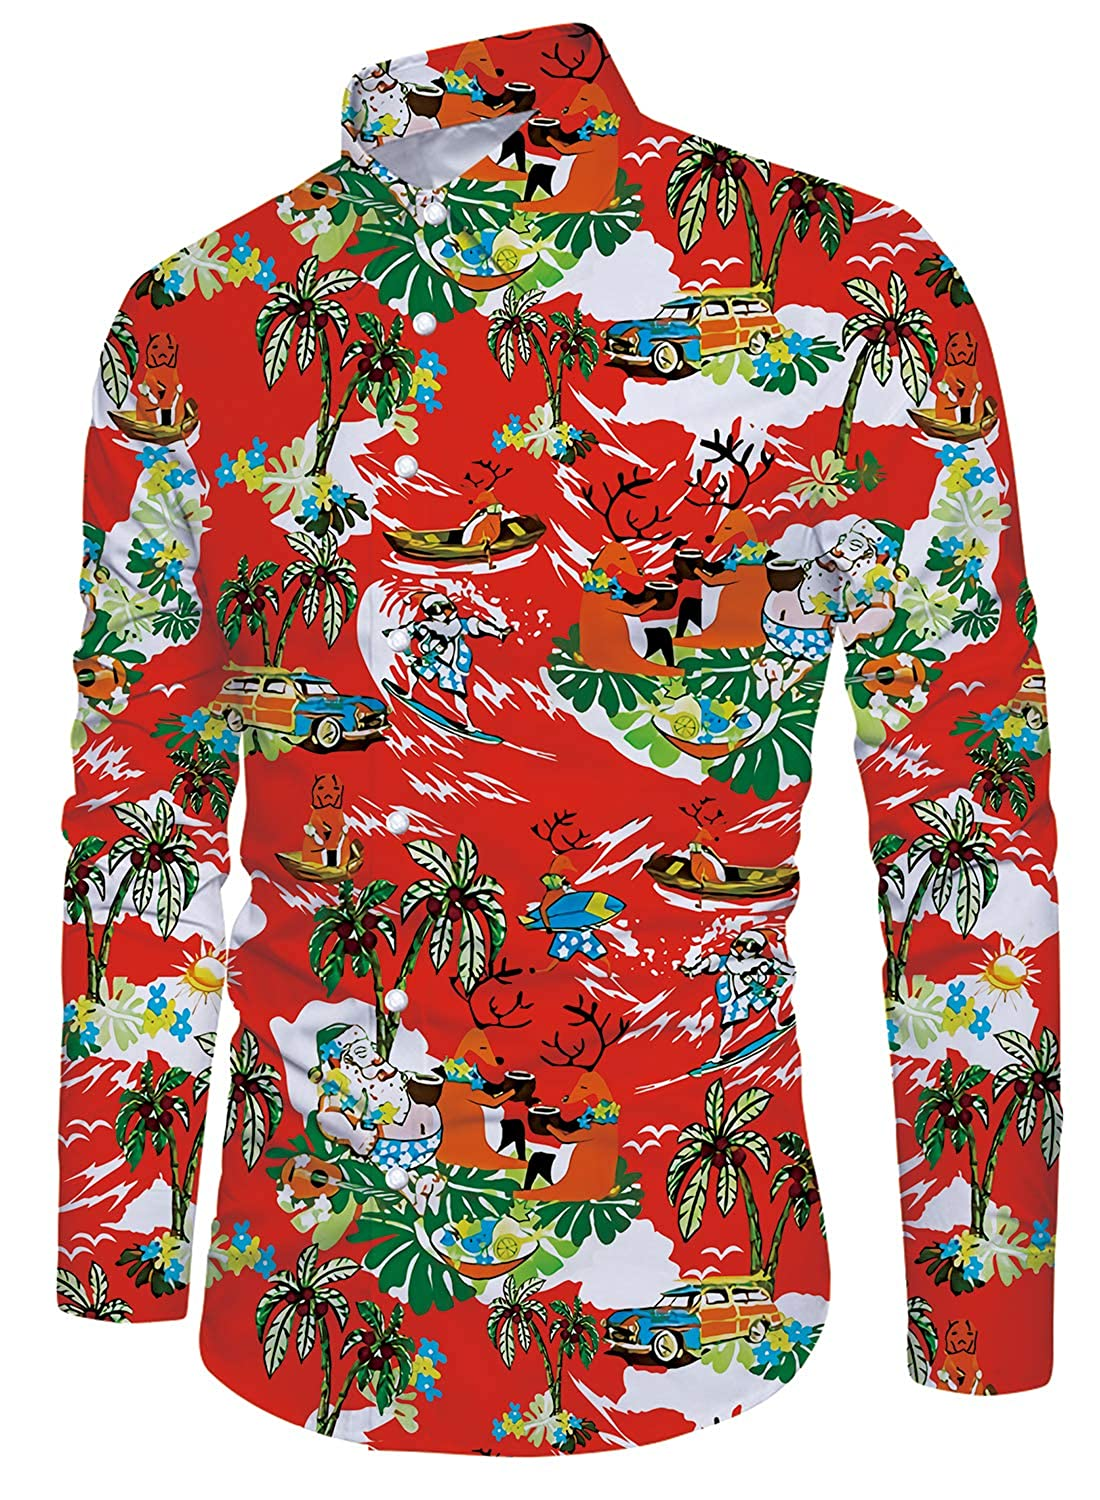 Retro Tiki Dress – Tropical, Hawaiian Dresses Funnycokid Mens Shirt Printed Long Sleeve Button Down Holiday Style Hawaiian Shirts £24.99 AT vintagedancer.com